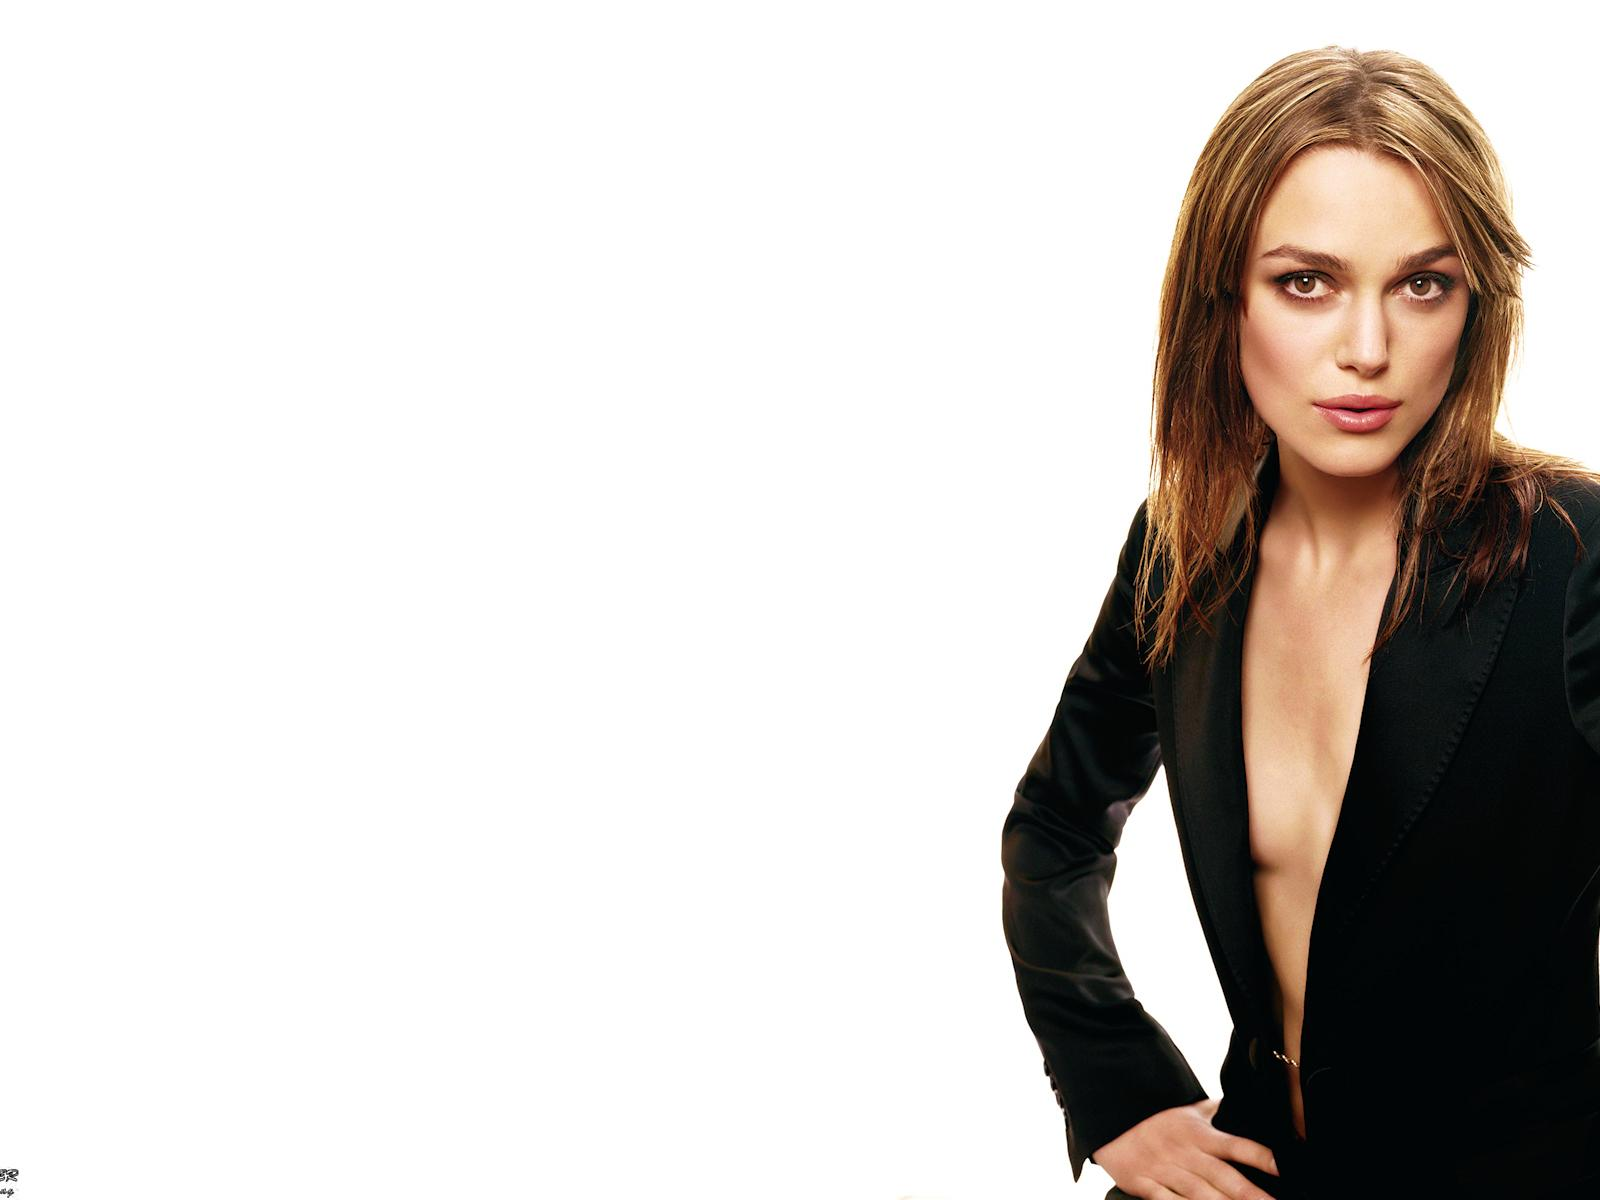 1600x1200 - Keira Knightley Wallpapers 14